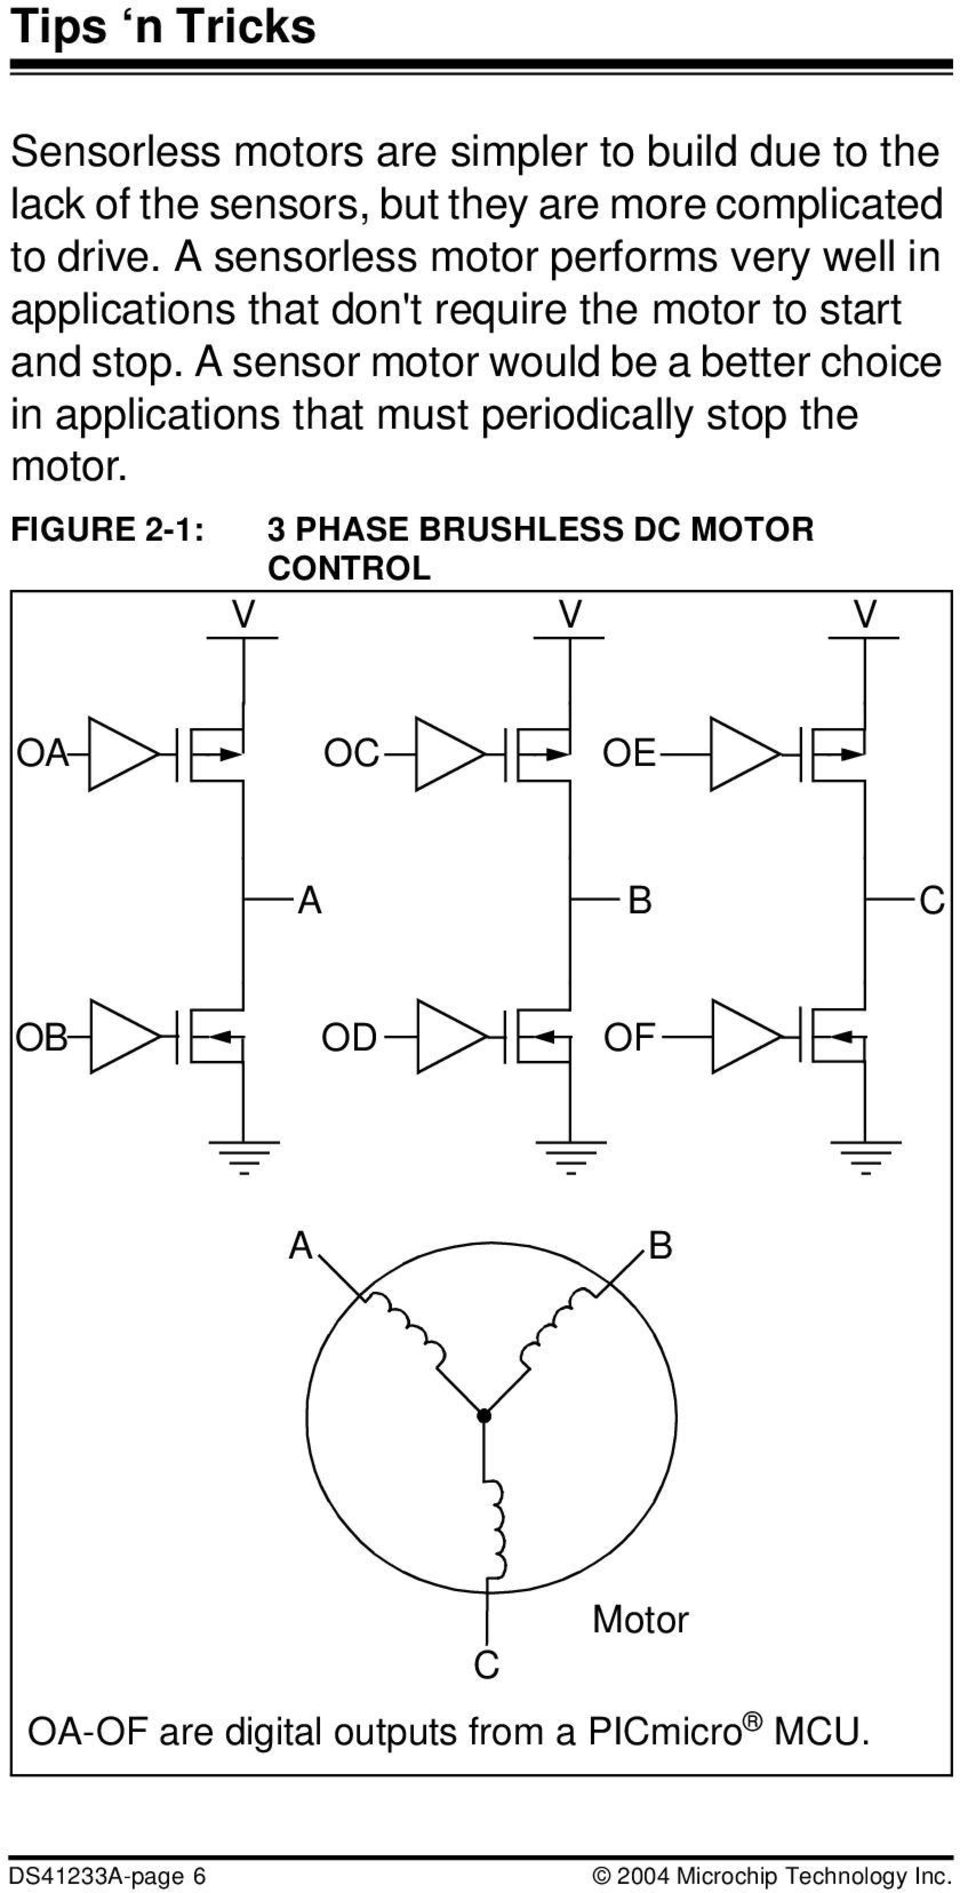 Picmicro Dc Motor Control Tips N Tricks Pdf Brushless Driver Block Diagram A Sensor Would Be Better Choice In Applications That Must Periodically Stop The